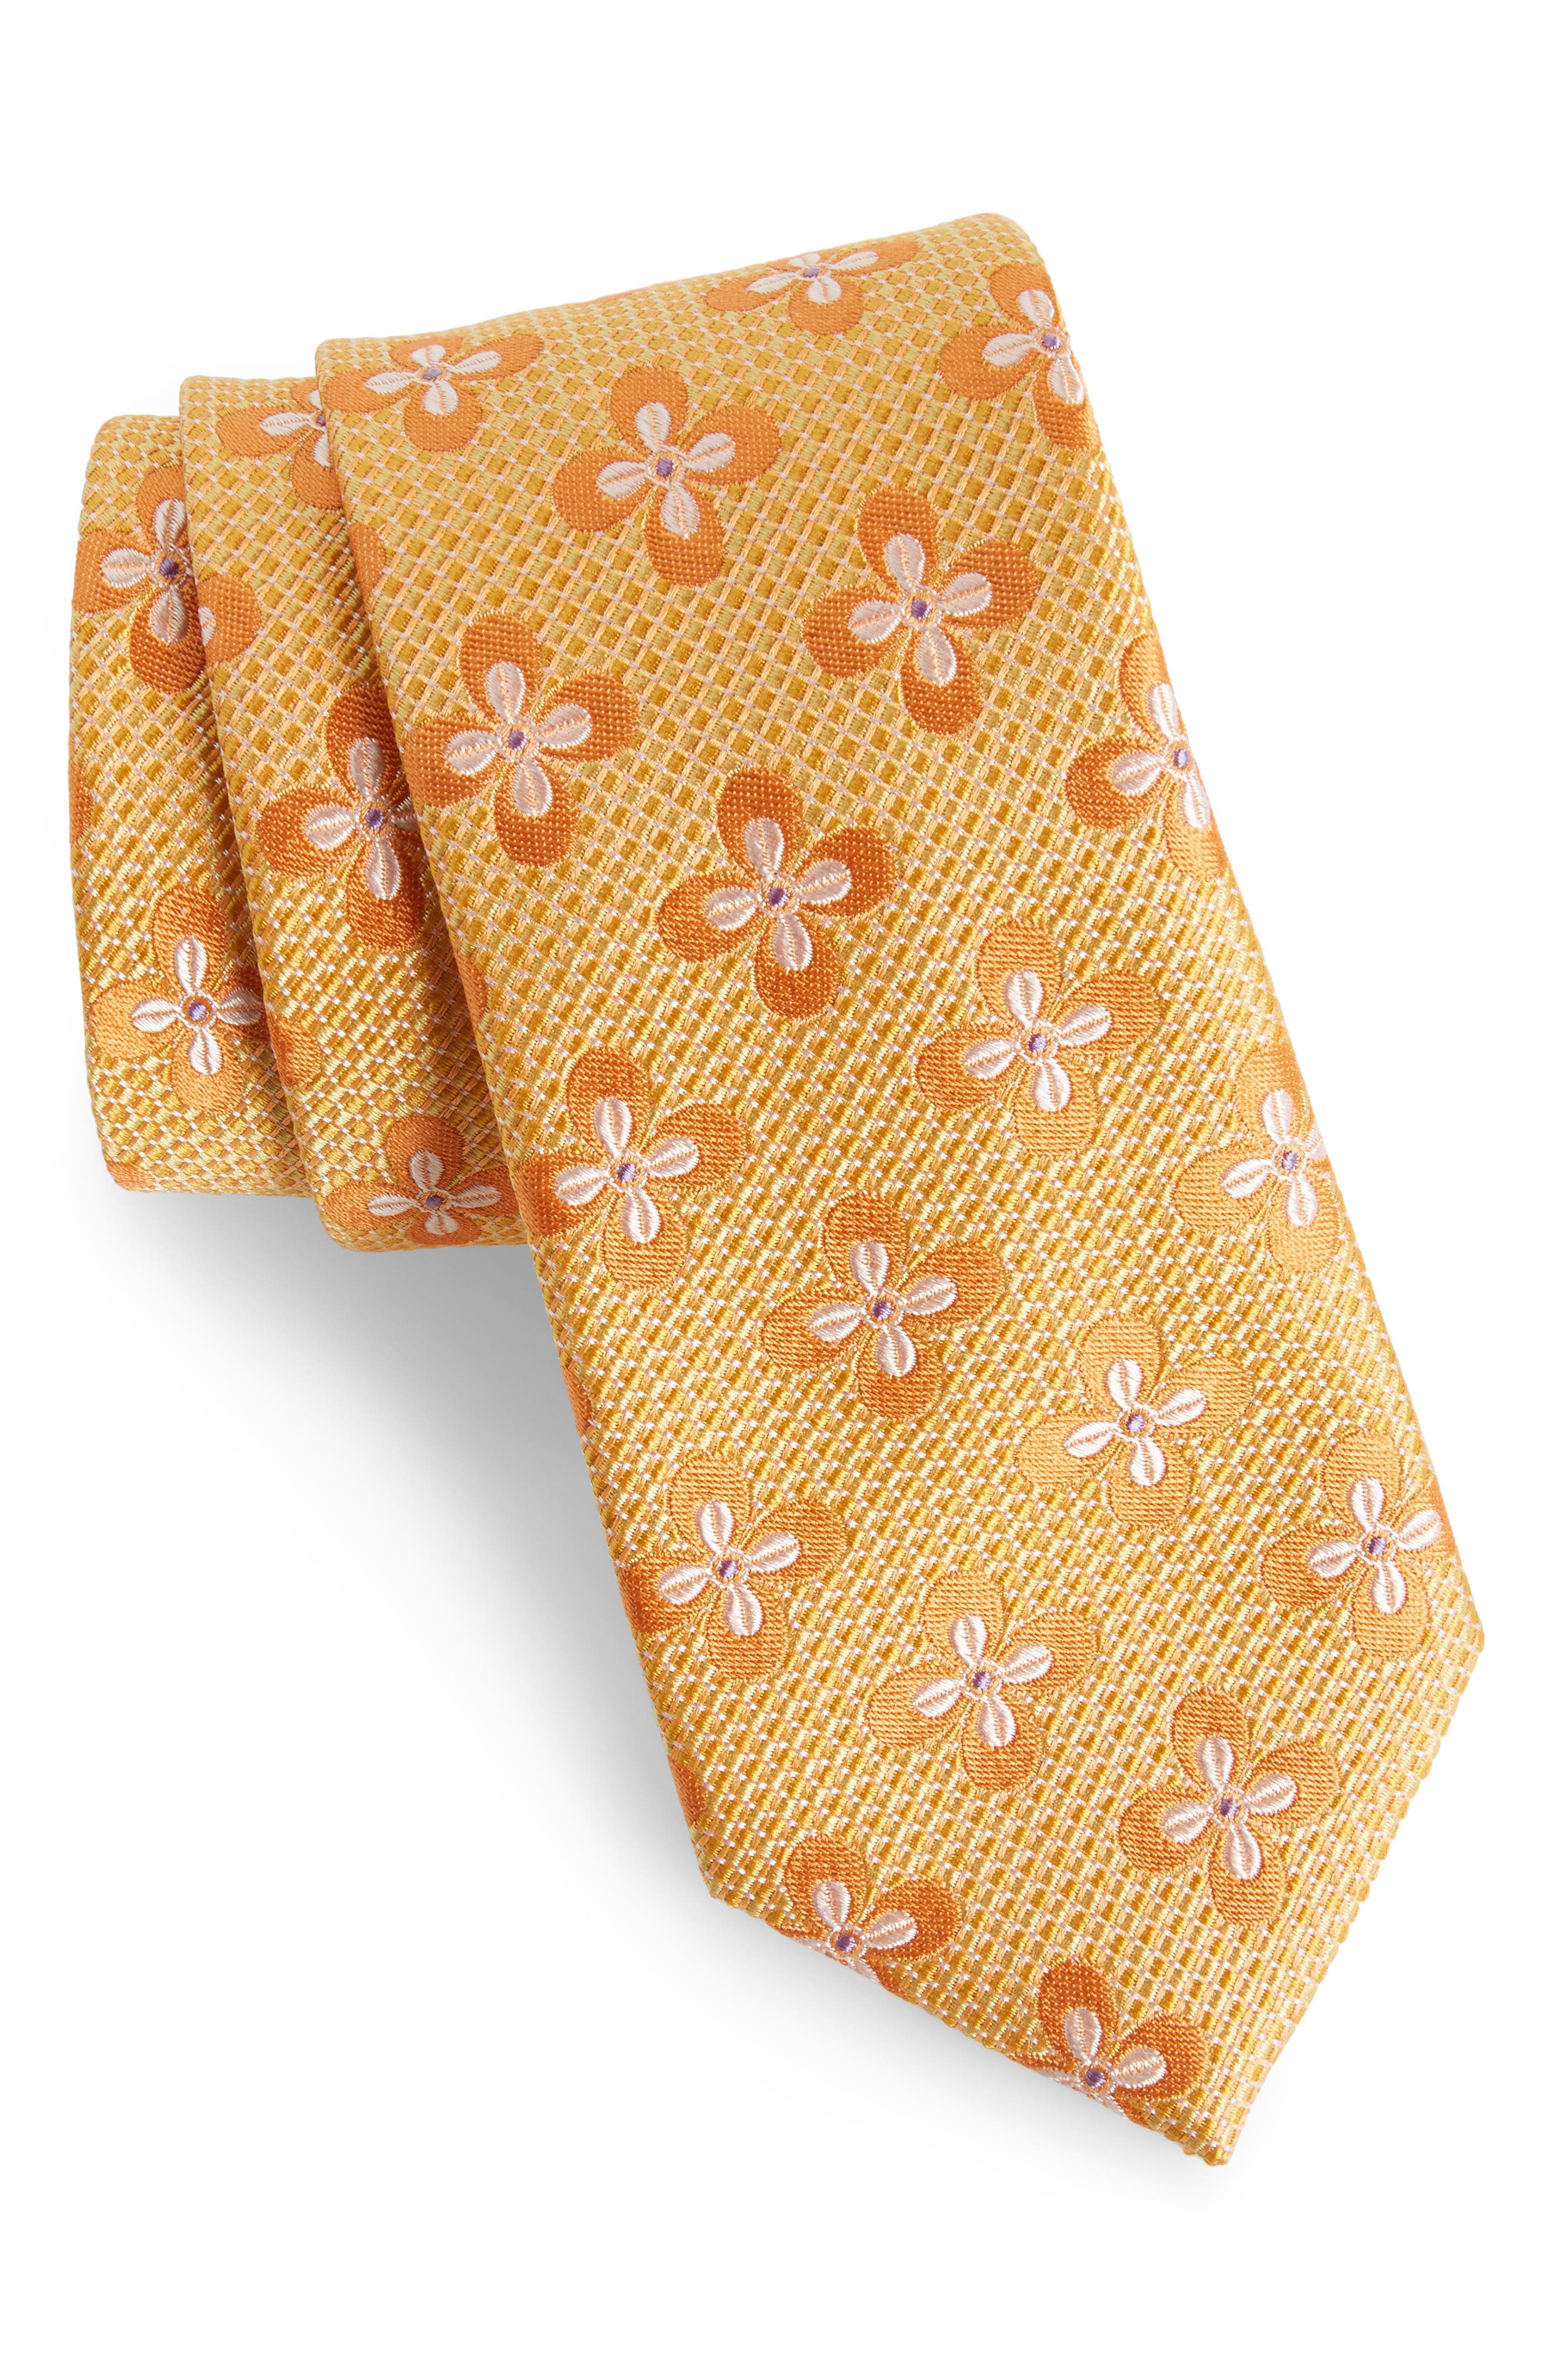 Floral Silk Tie,                             Main thumbnail 1, color,                             Orange